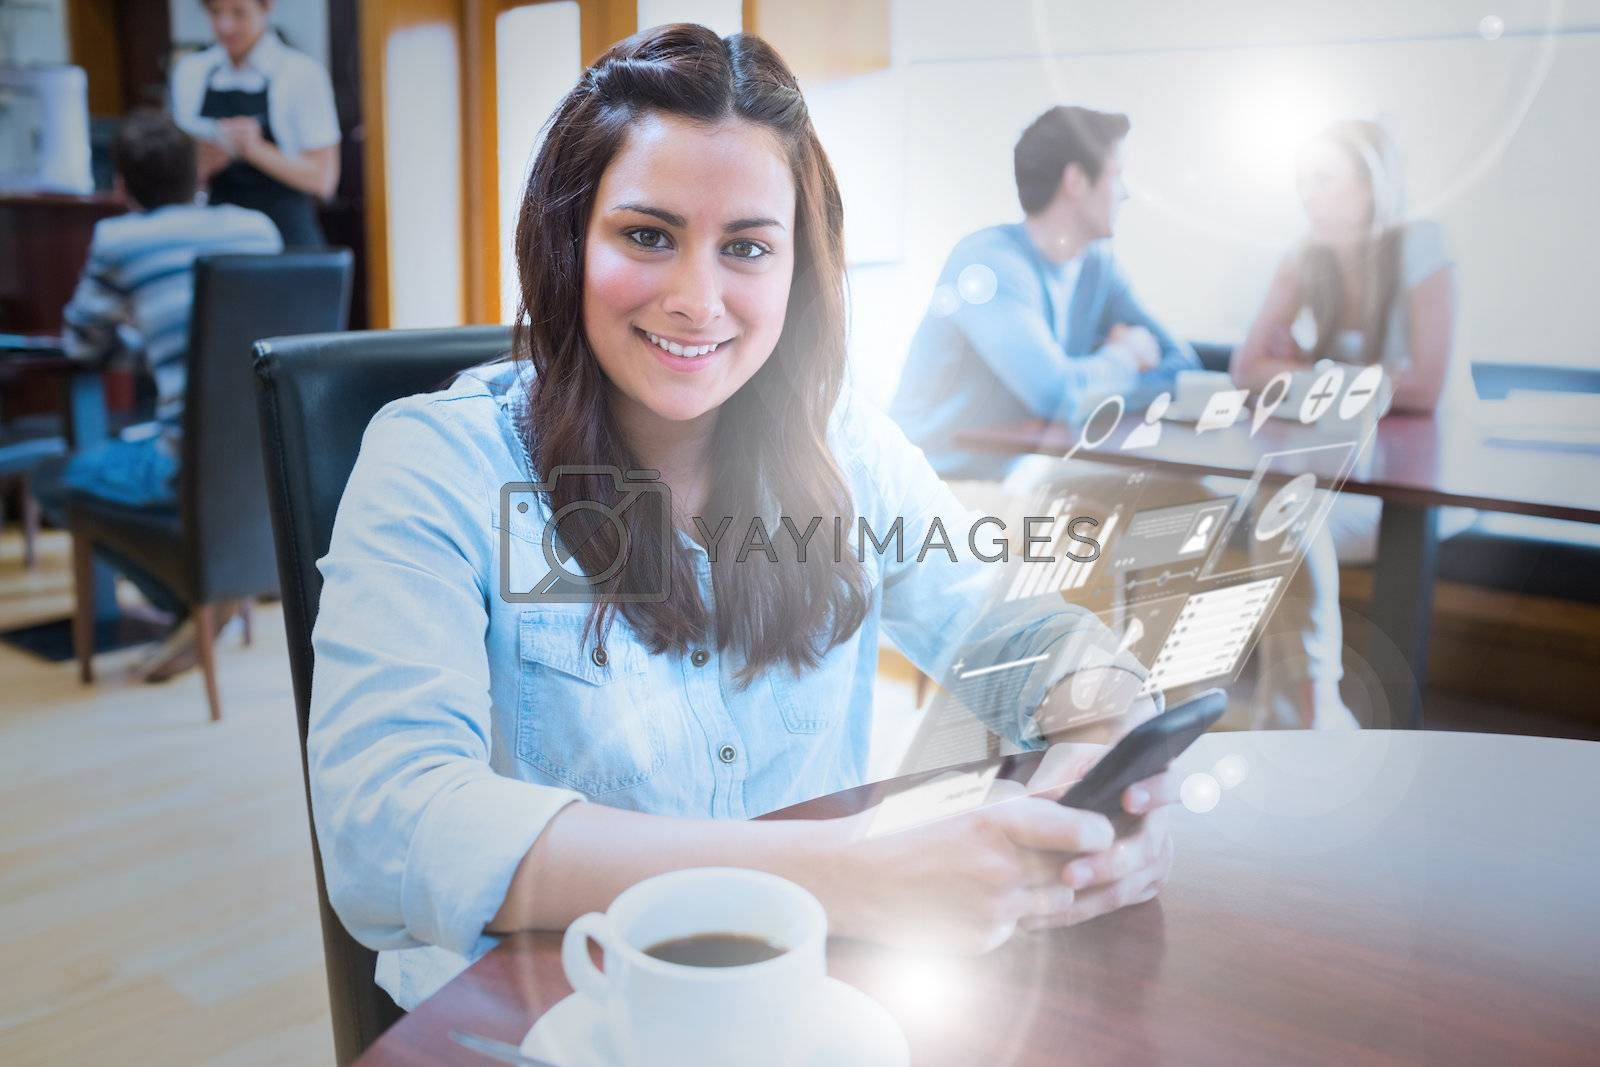 Smiling young woman studying on futuristic smartphone by Wavebreakmedia